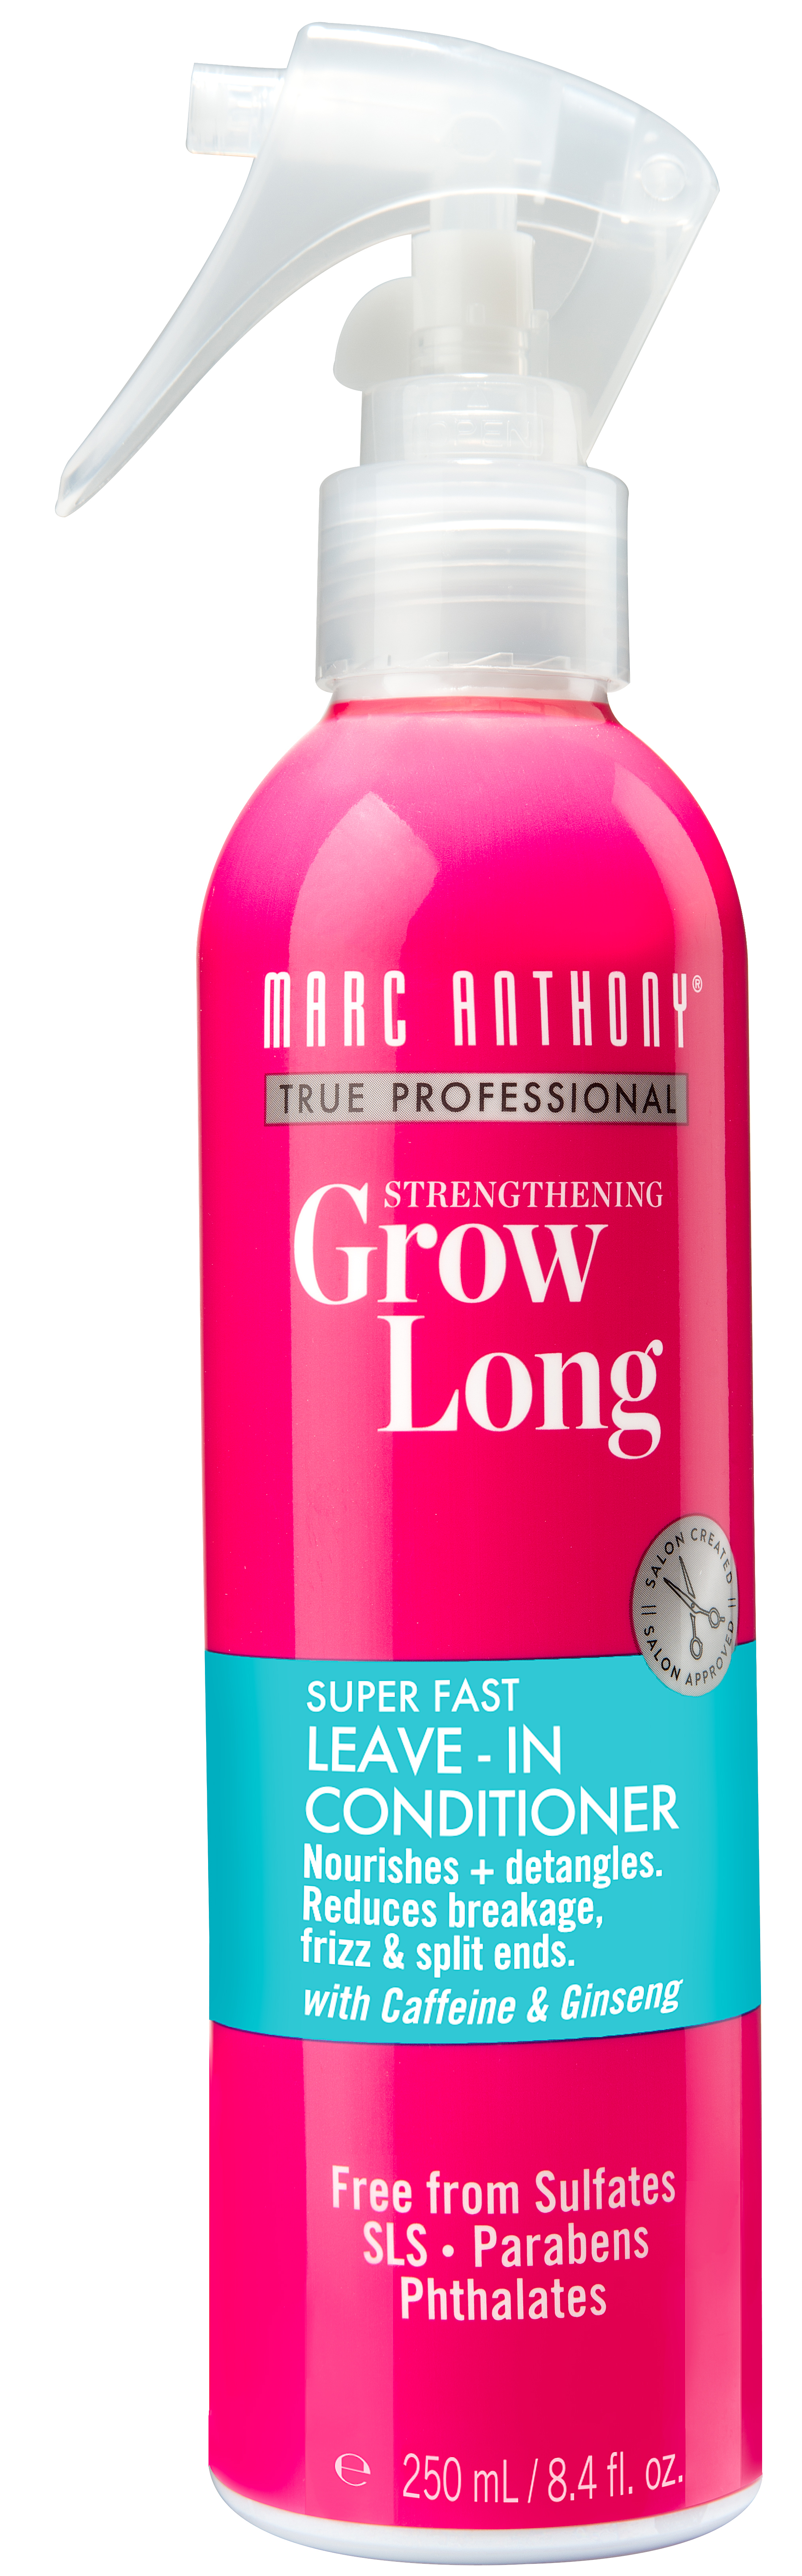 Grow Longer Caffein Ginseng Leave In